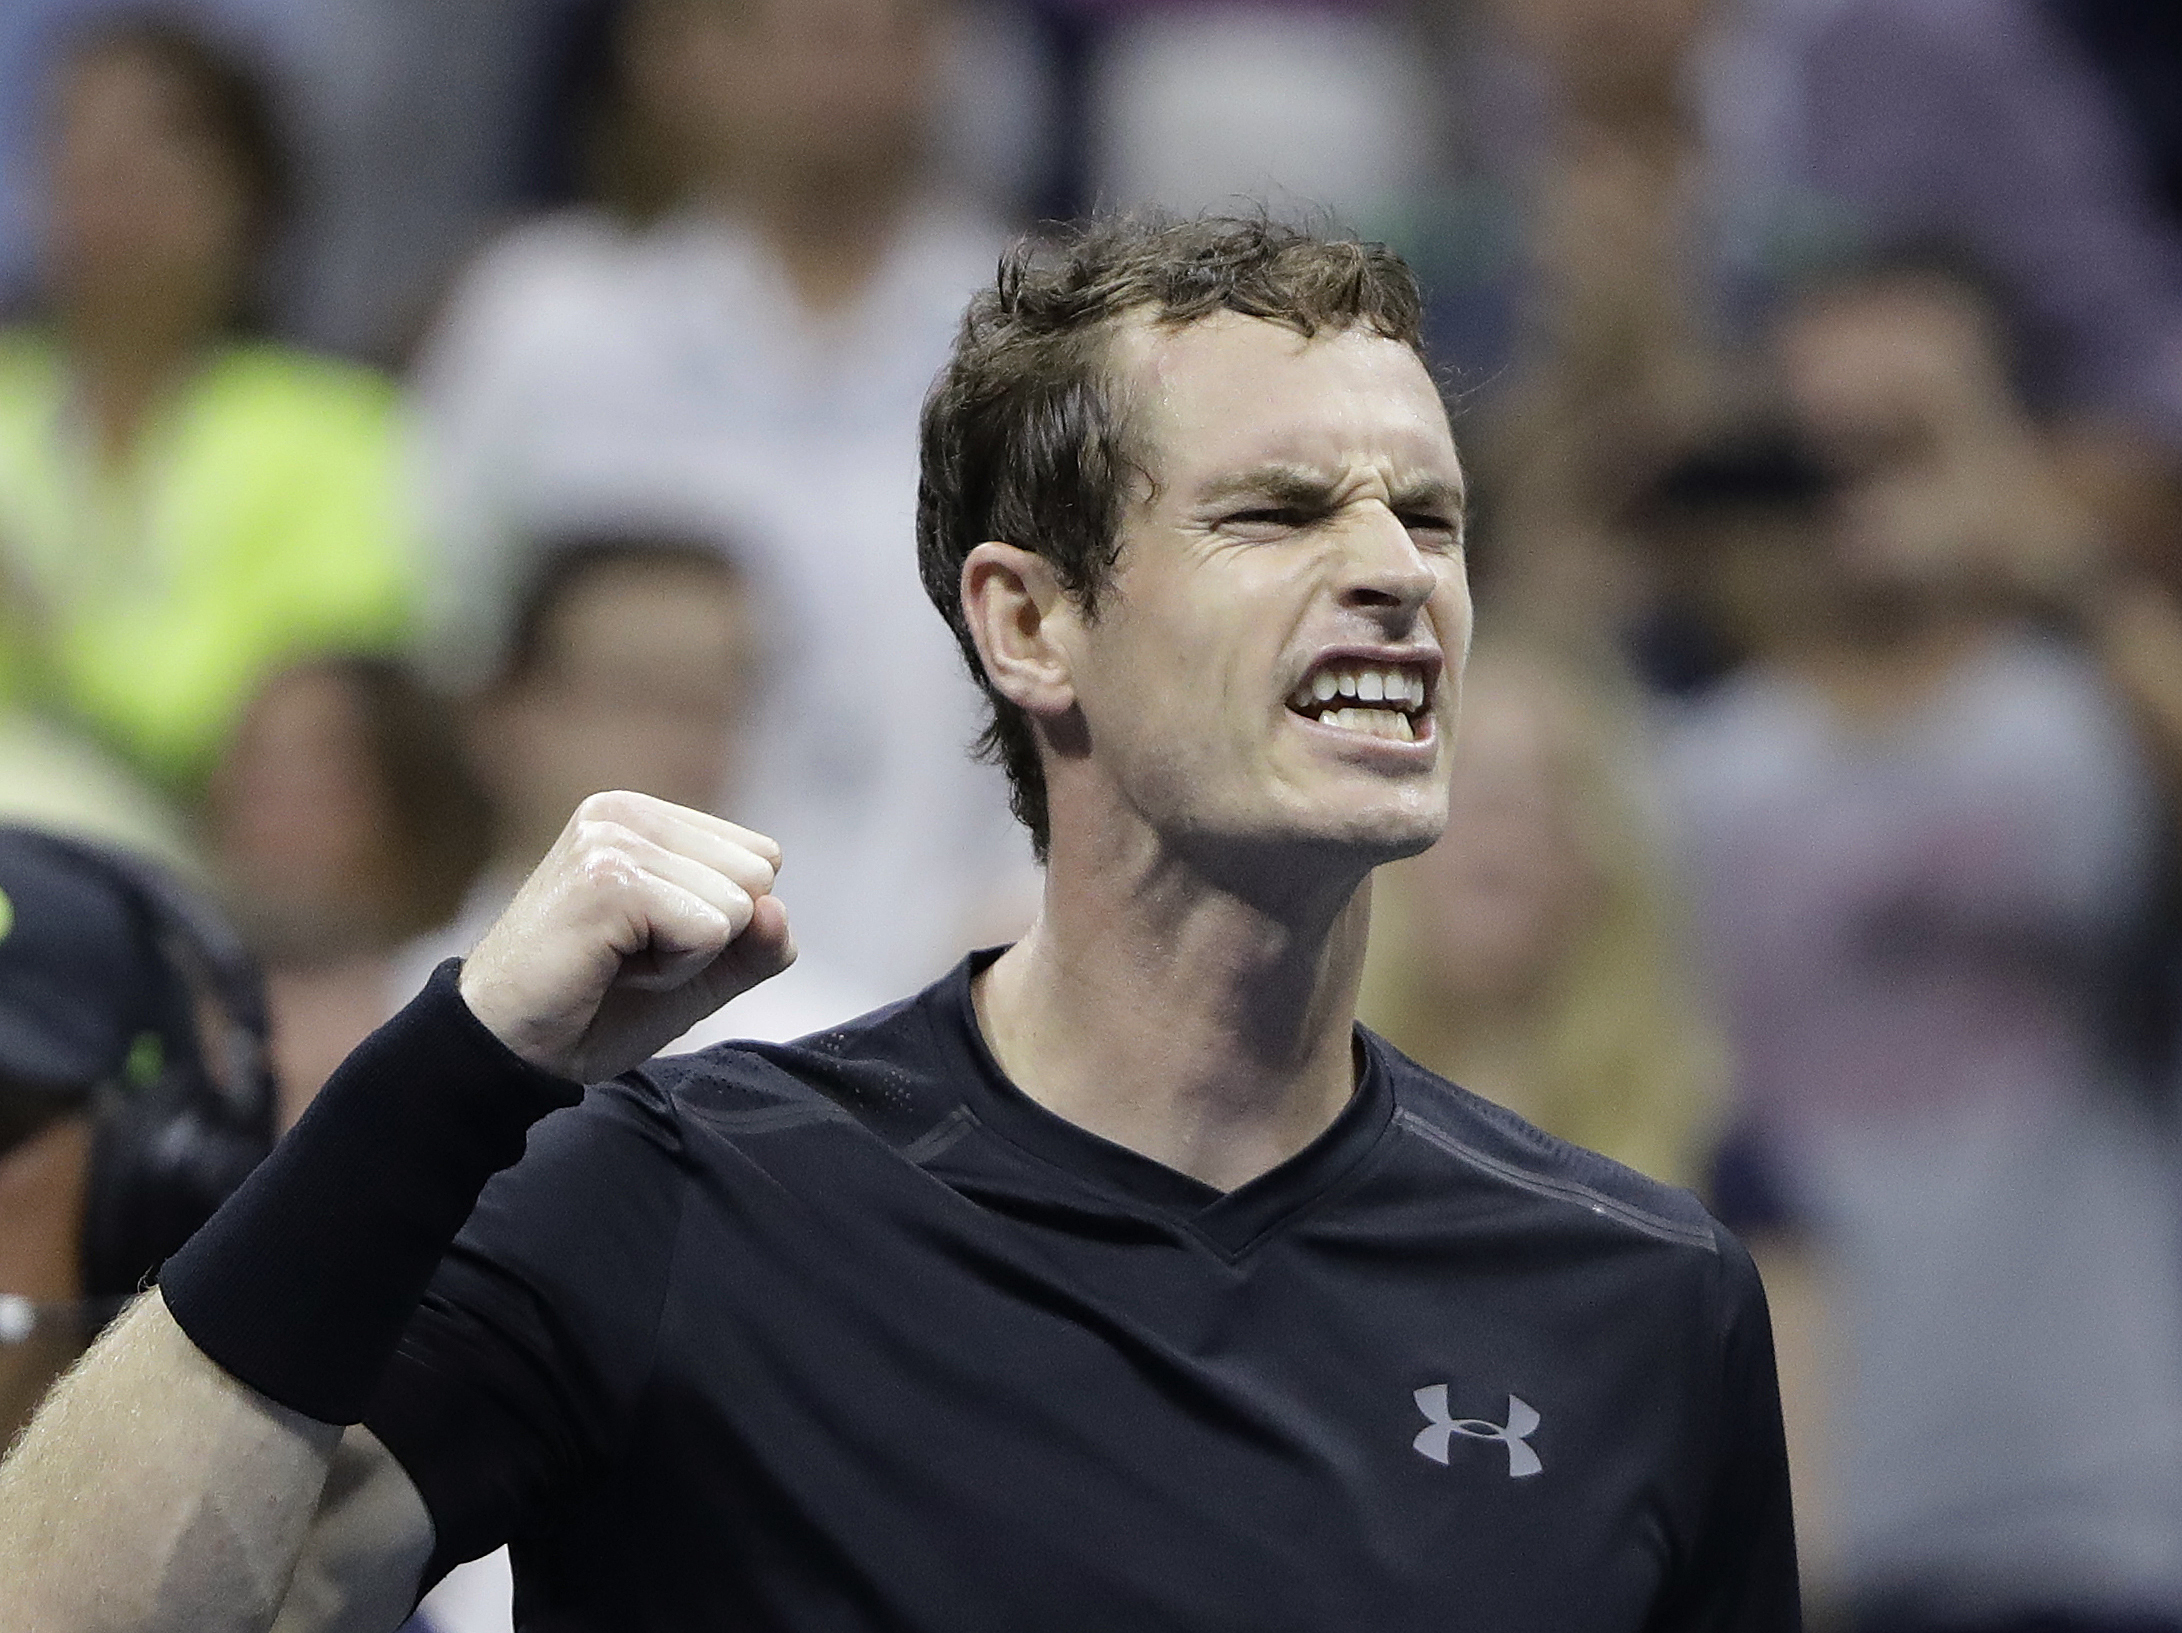 Andy Murray, of Britain, reacts after defeating Grigor Dimitrov, of Bulgaria, 6-1, 6-2, 6-2 during the U.S. Open tennis tournament, Monday, Sept. 5, 2016, in New York. (AP Photo/Darron Cummings)